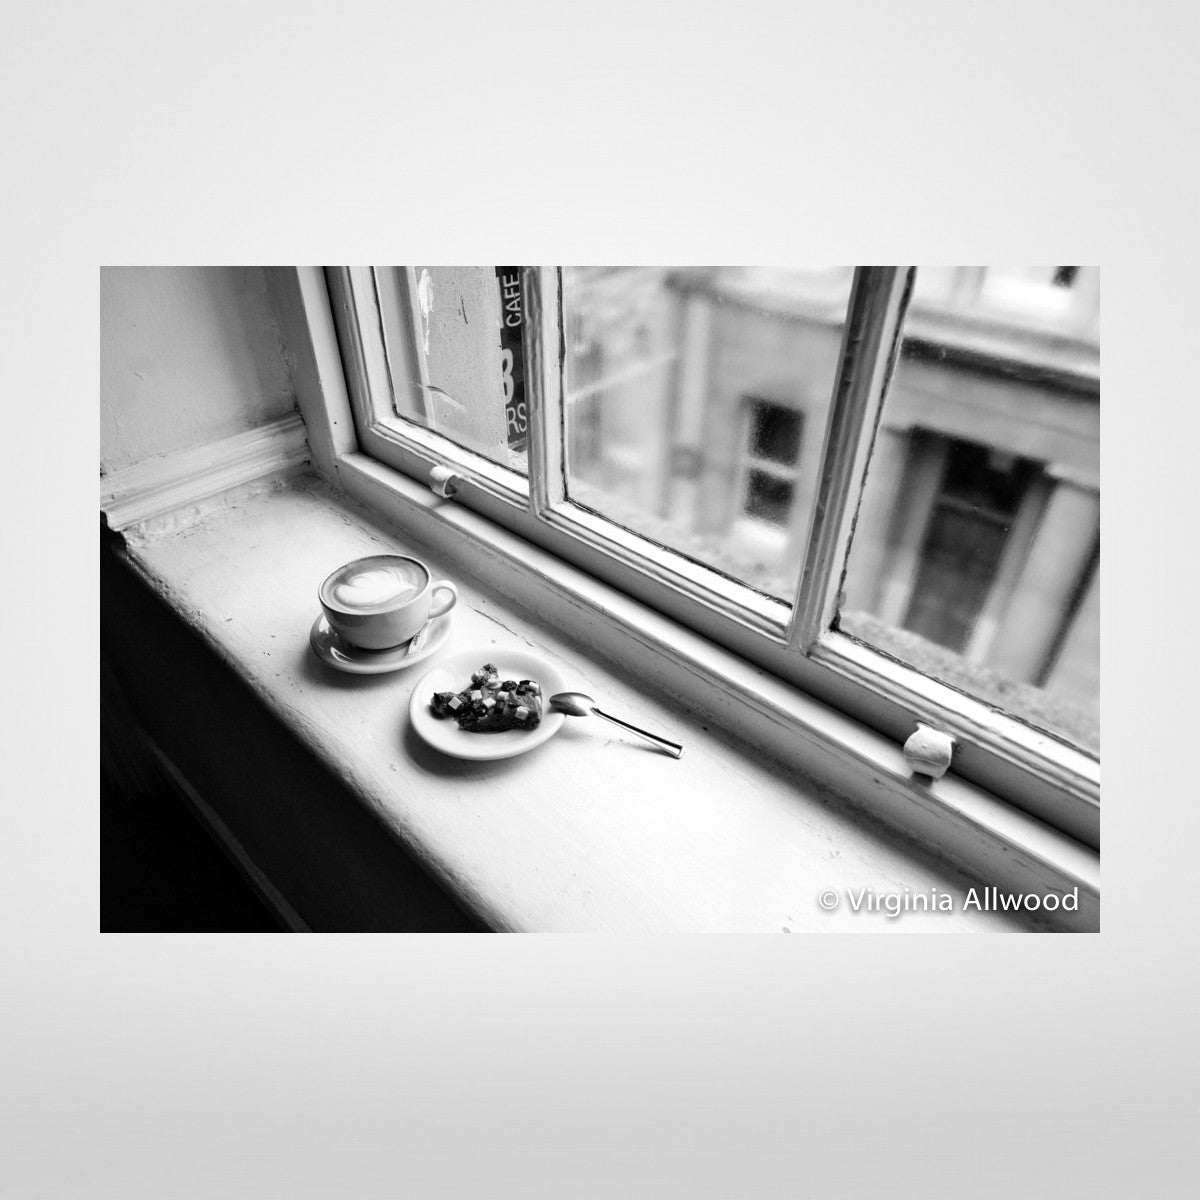 Fancy a Break? - B&W Photographic Print by Virginia Allwood at The Bristol Shop